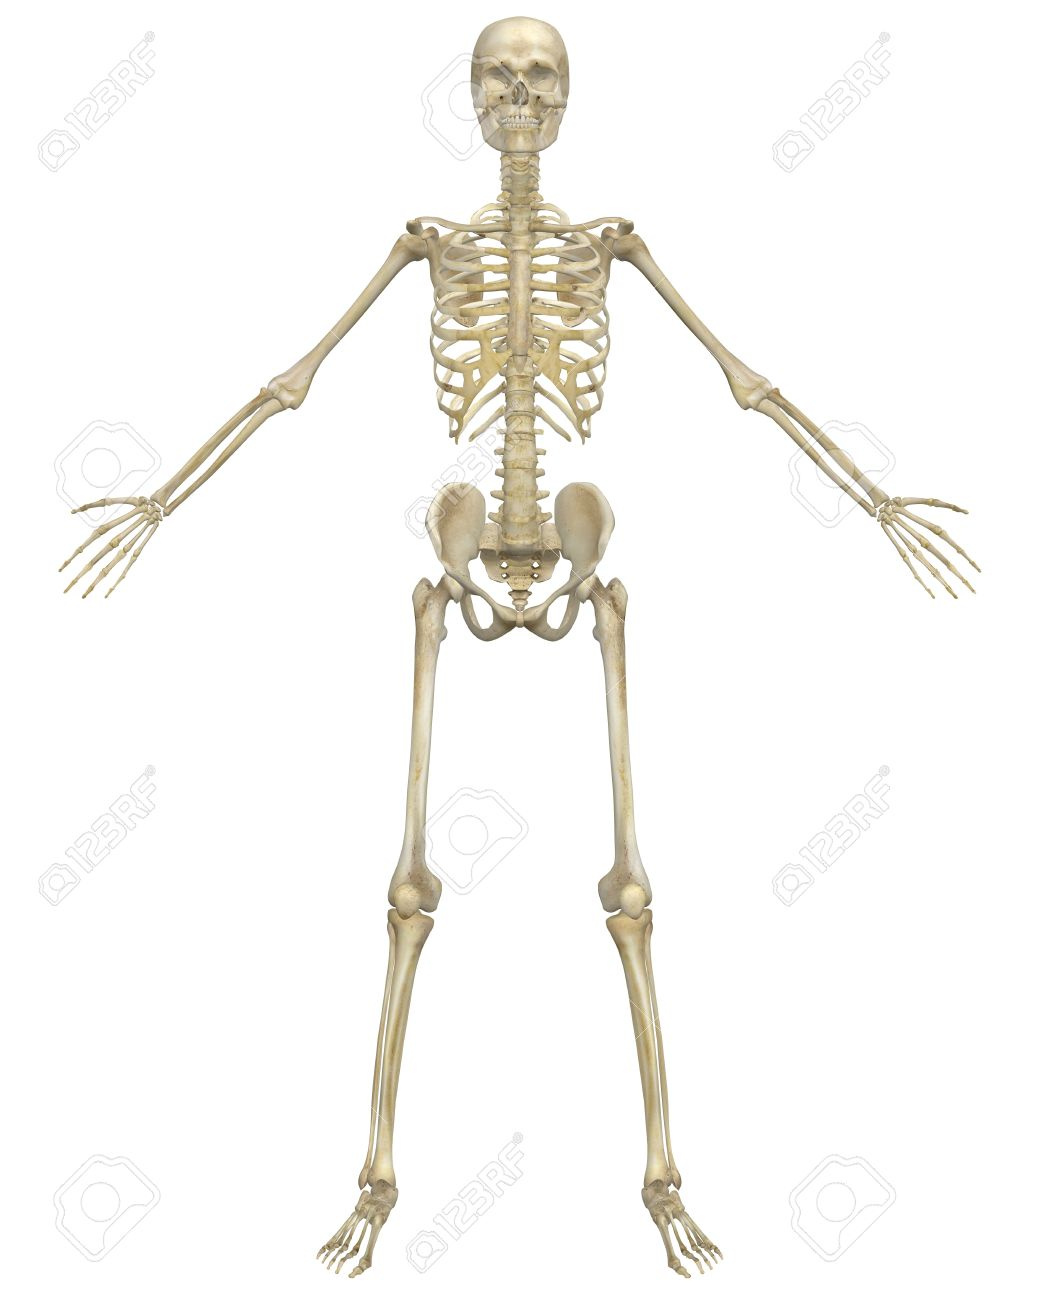 A Front View Illustration Of The Human Skeletal Anatomy. Very ...